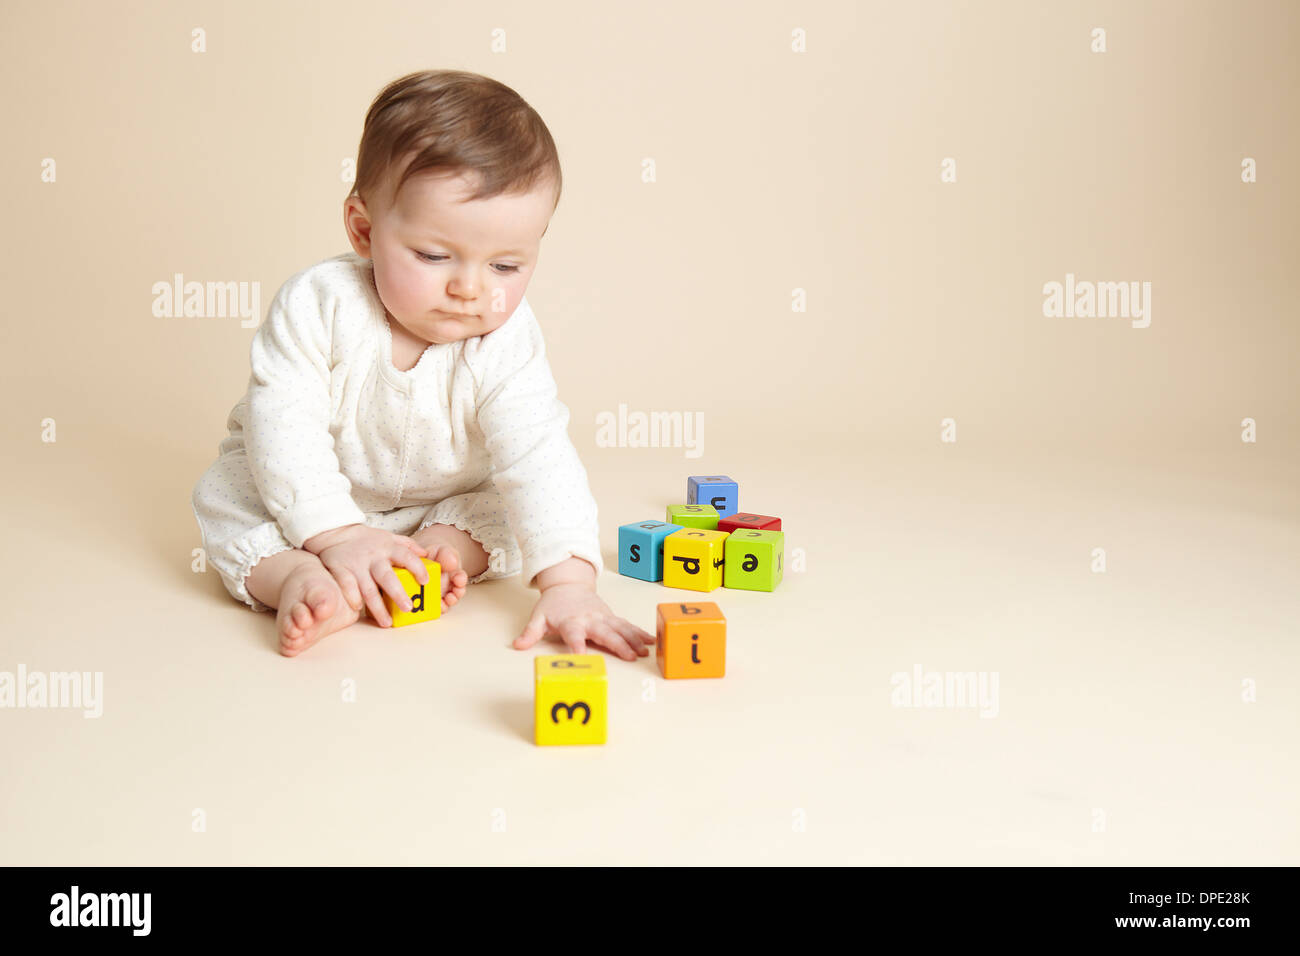 Studio portrait of baby girl Playing with alphabet blocks Photo Stock